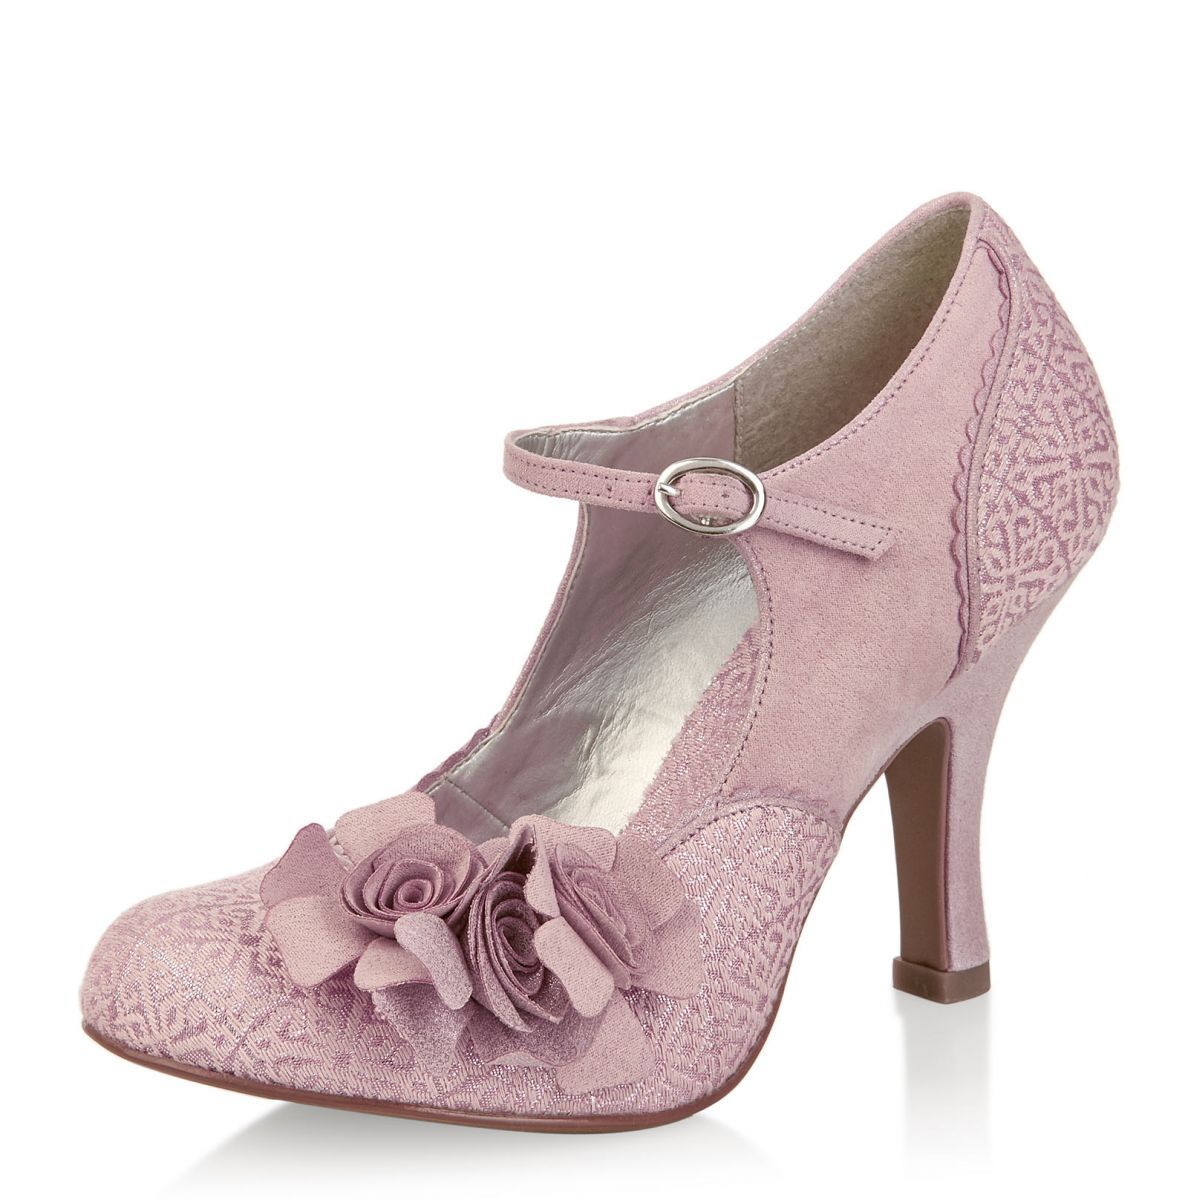 Ruby Shoo Emily Dusky Pink Flower Mary Jane High Heel Shoes